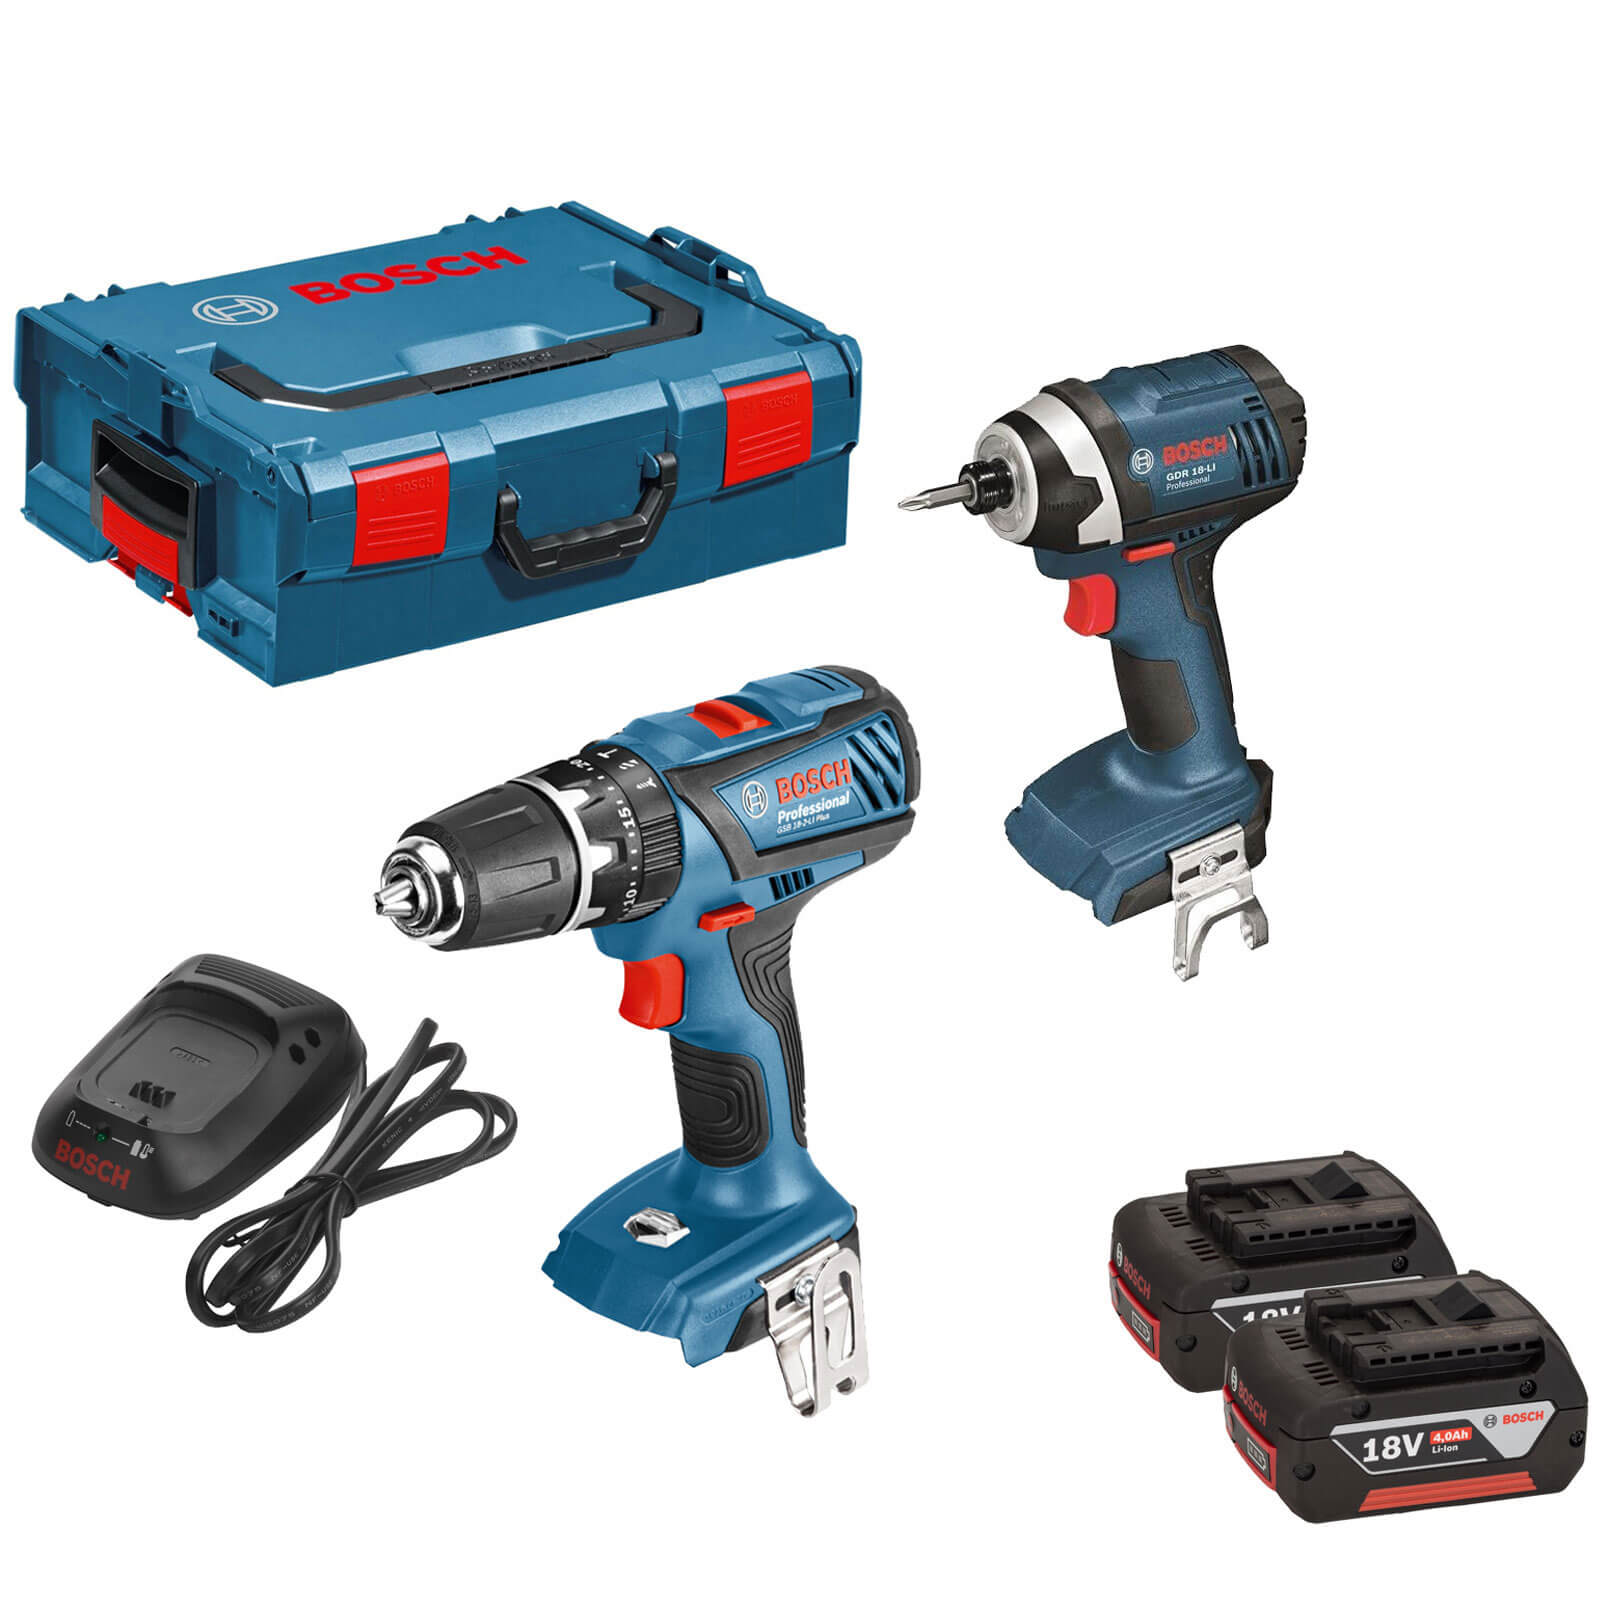 bosch gsb 18 2 li plus 18v cordless combi drill impact driver. Black Bedroom Furniture Sets. Home Design Ideas